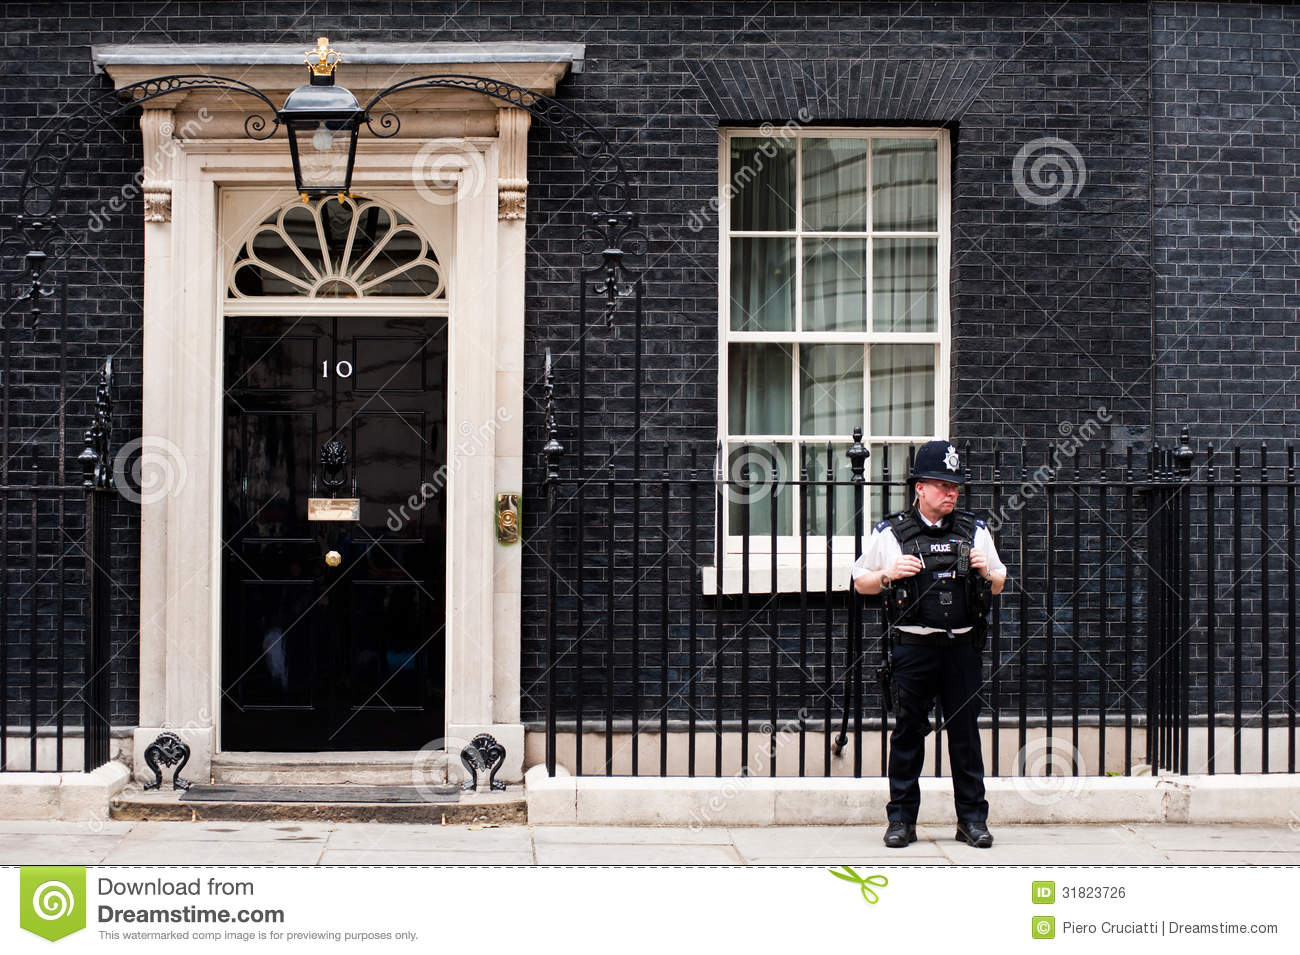 10 downing street in london editorial photo image of for Front door 10 downing street